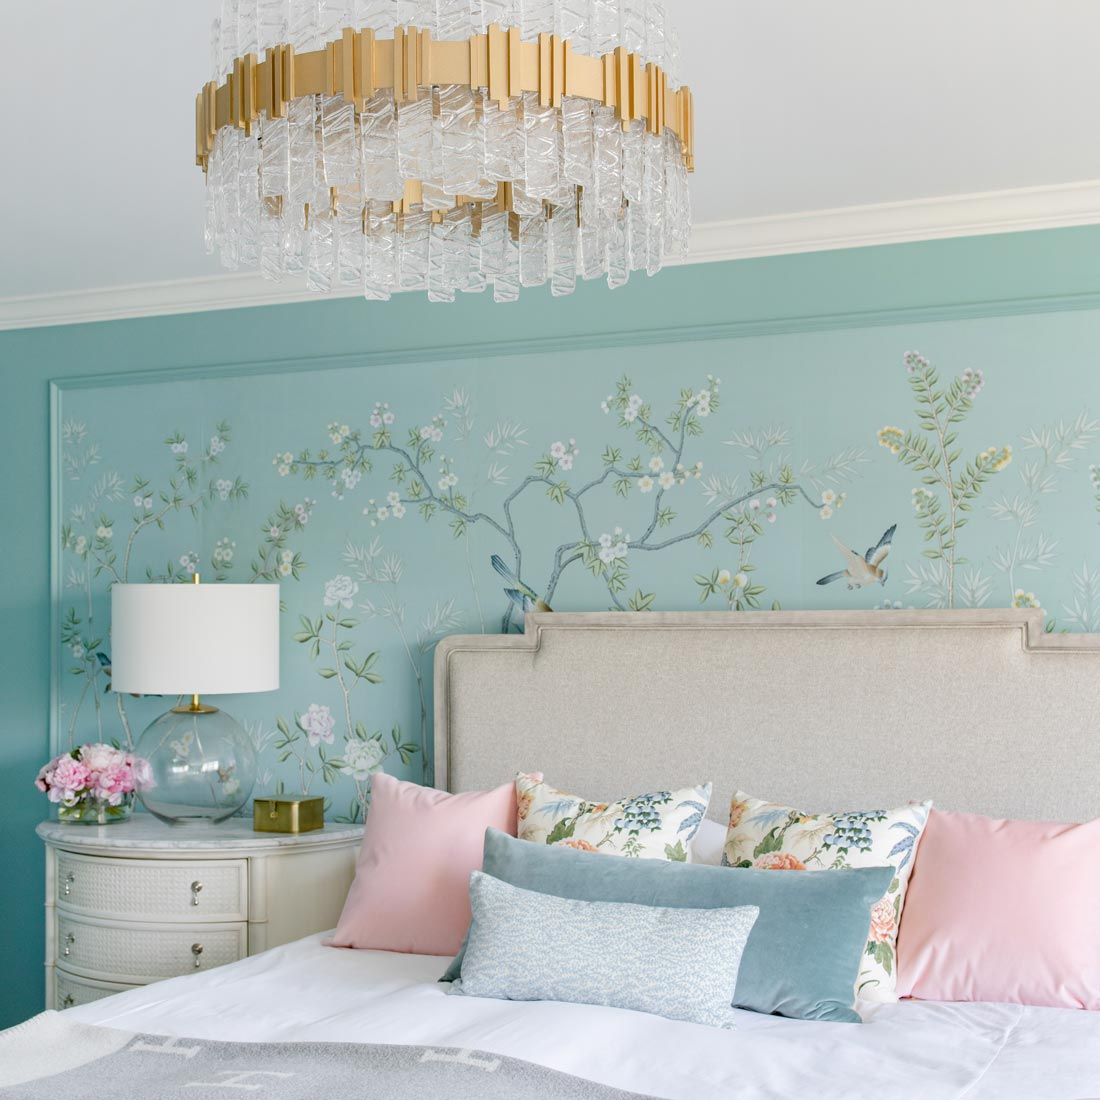 Jennifer Lake Bedroom de Gournay Frontgate